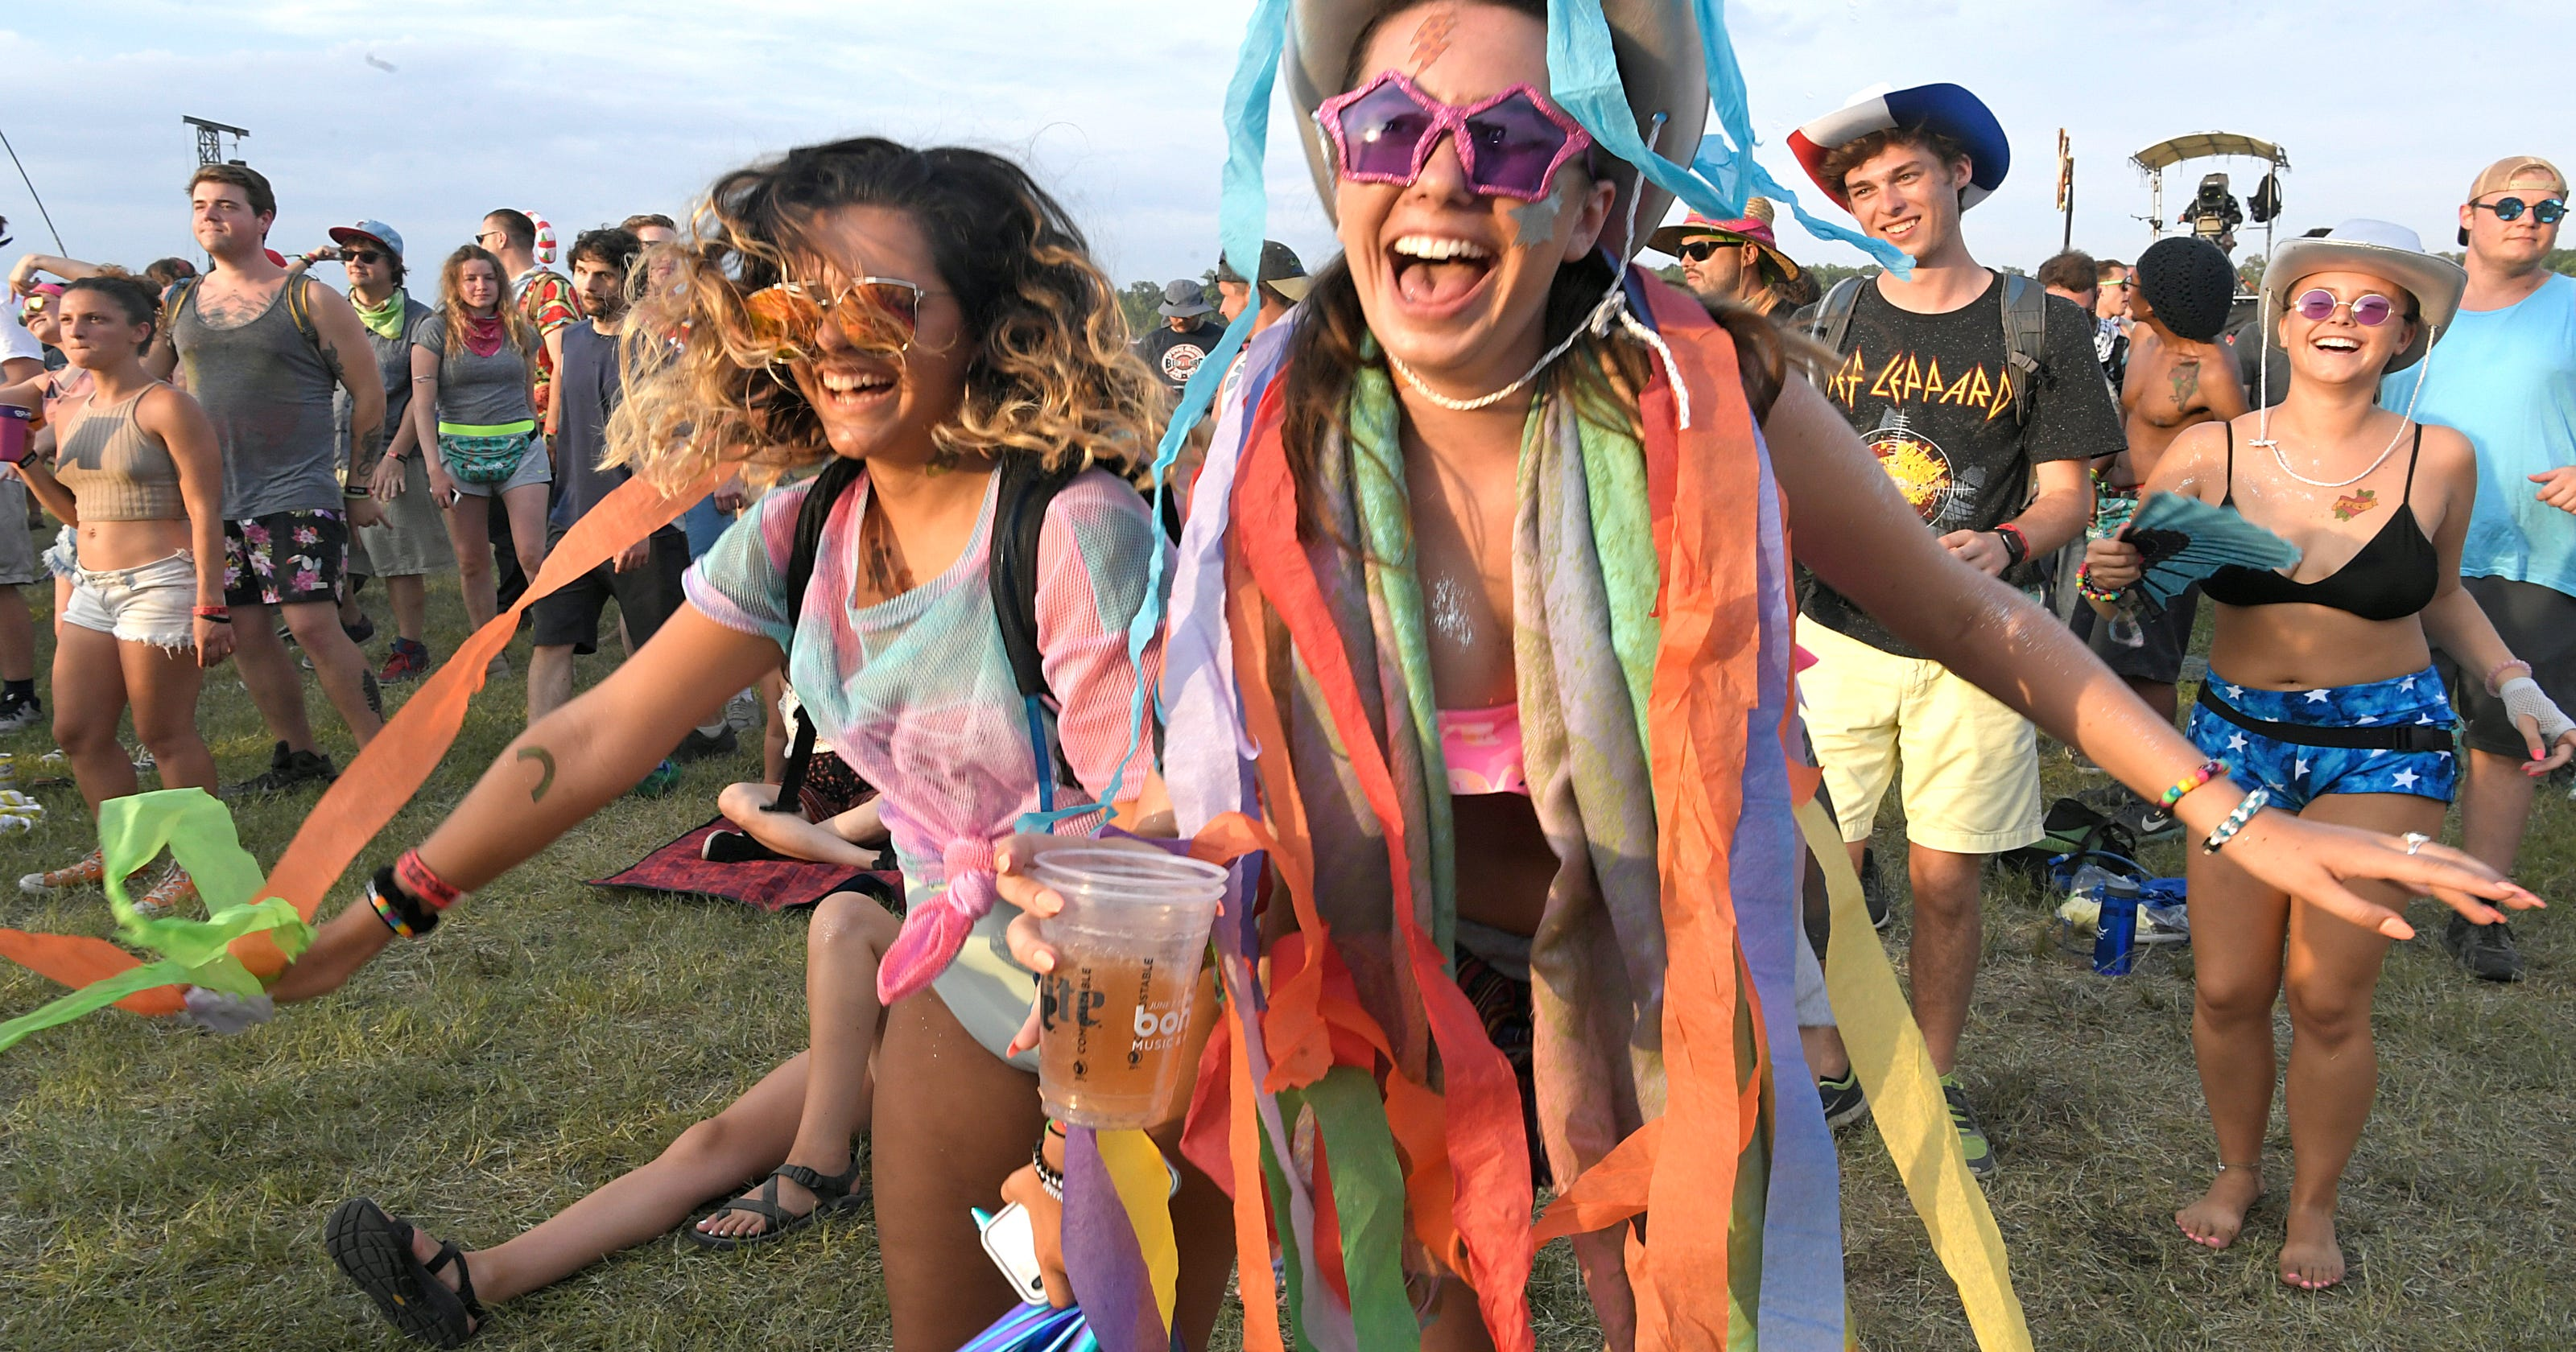 Bonnaroo hookup stories